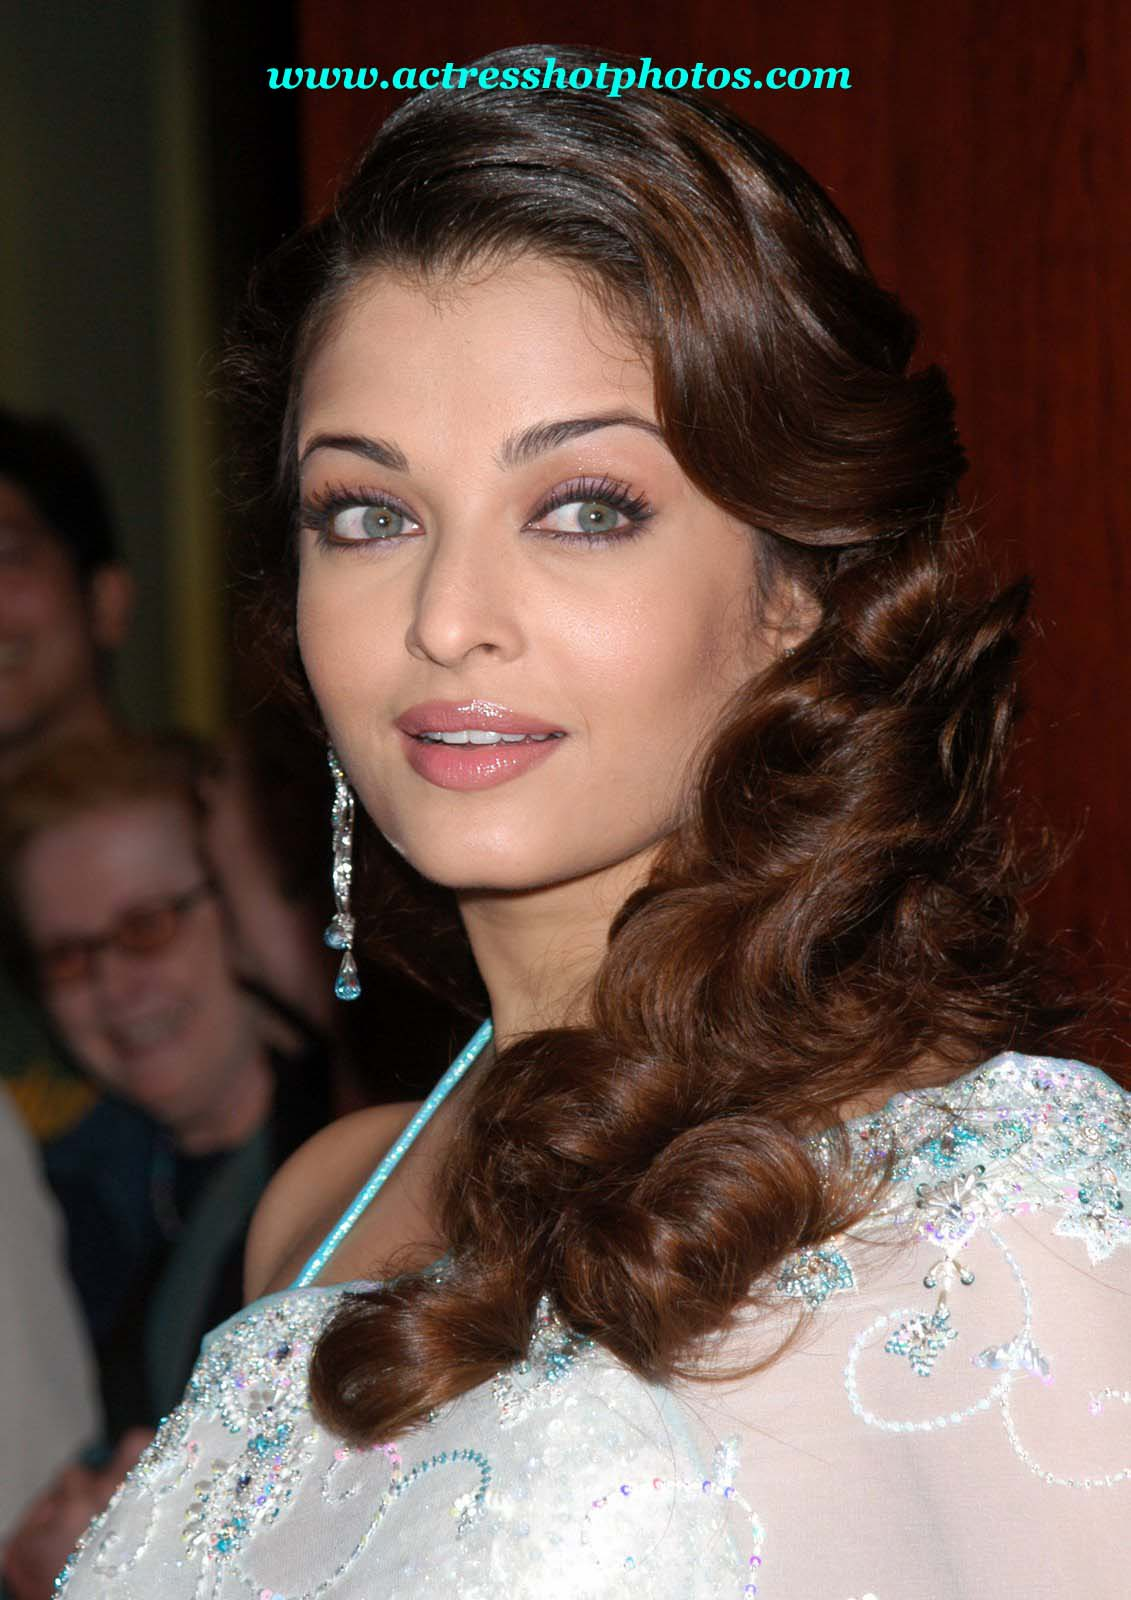 http://glmourheroine.files.wordpress.com/2011/02/aishwarya-rai-hair-styles-hot-lips-photos.jpg